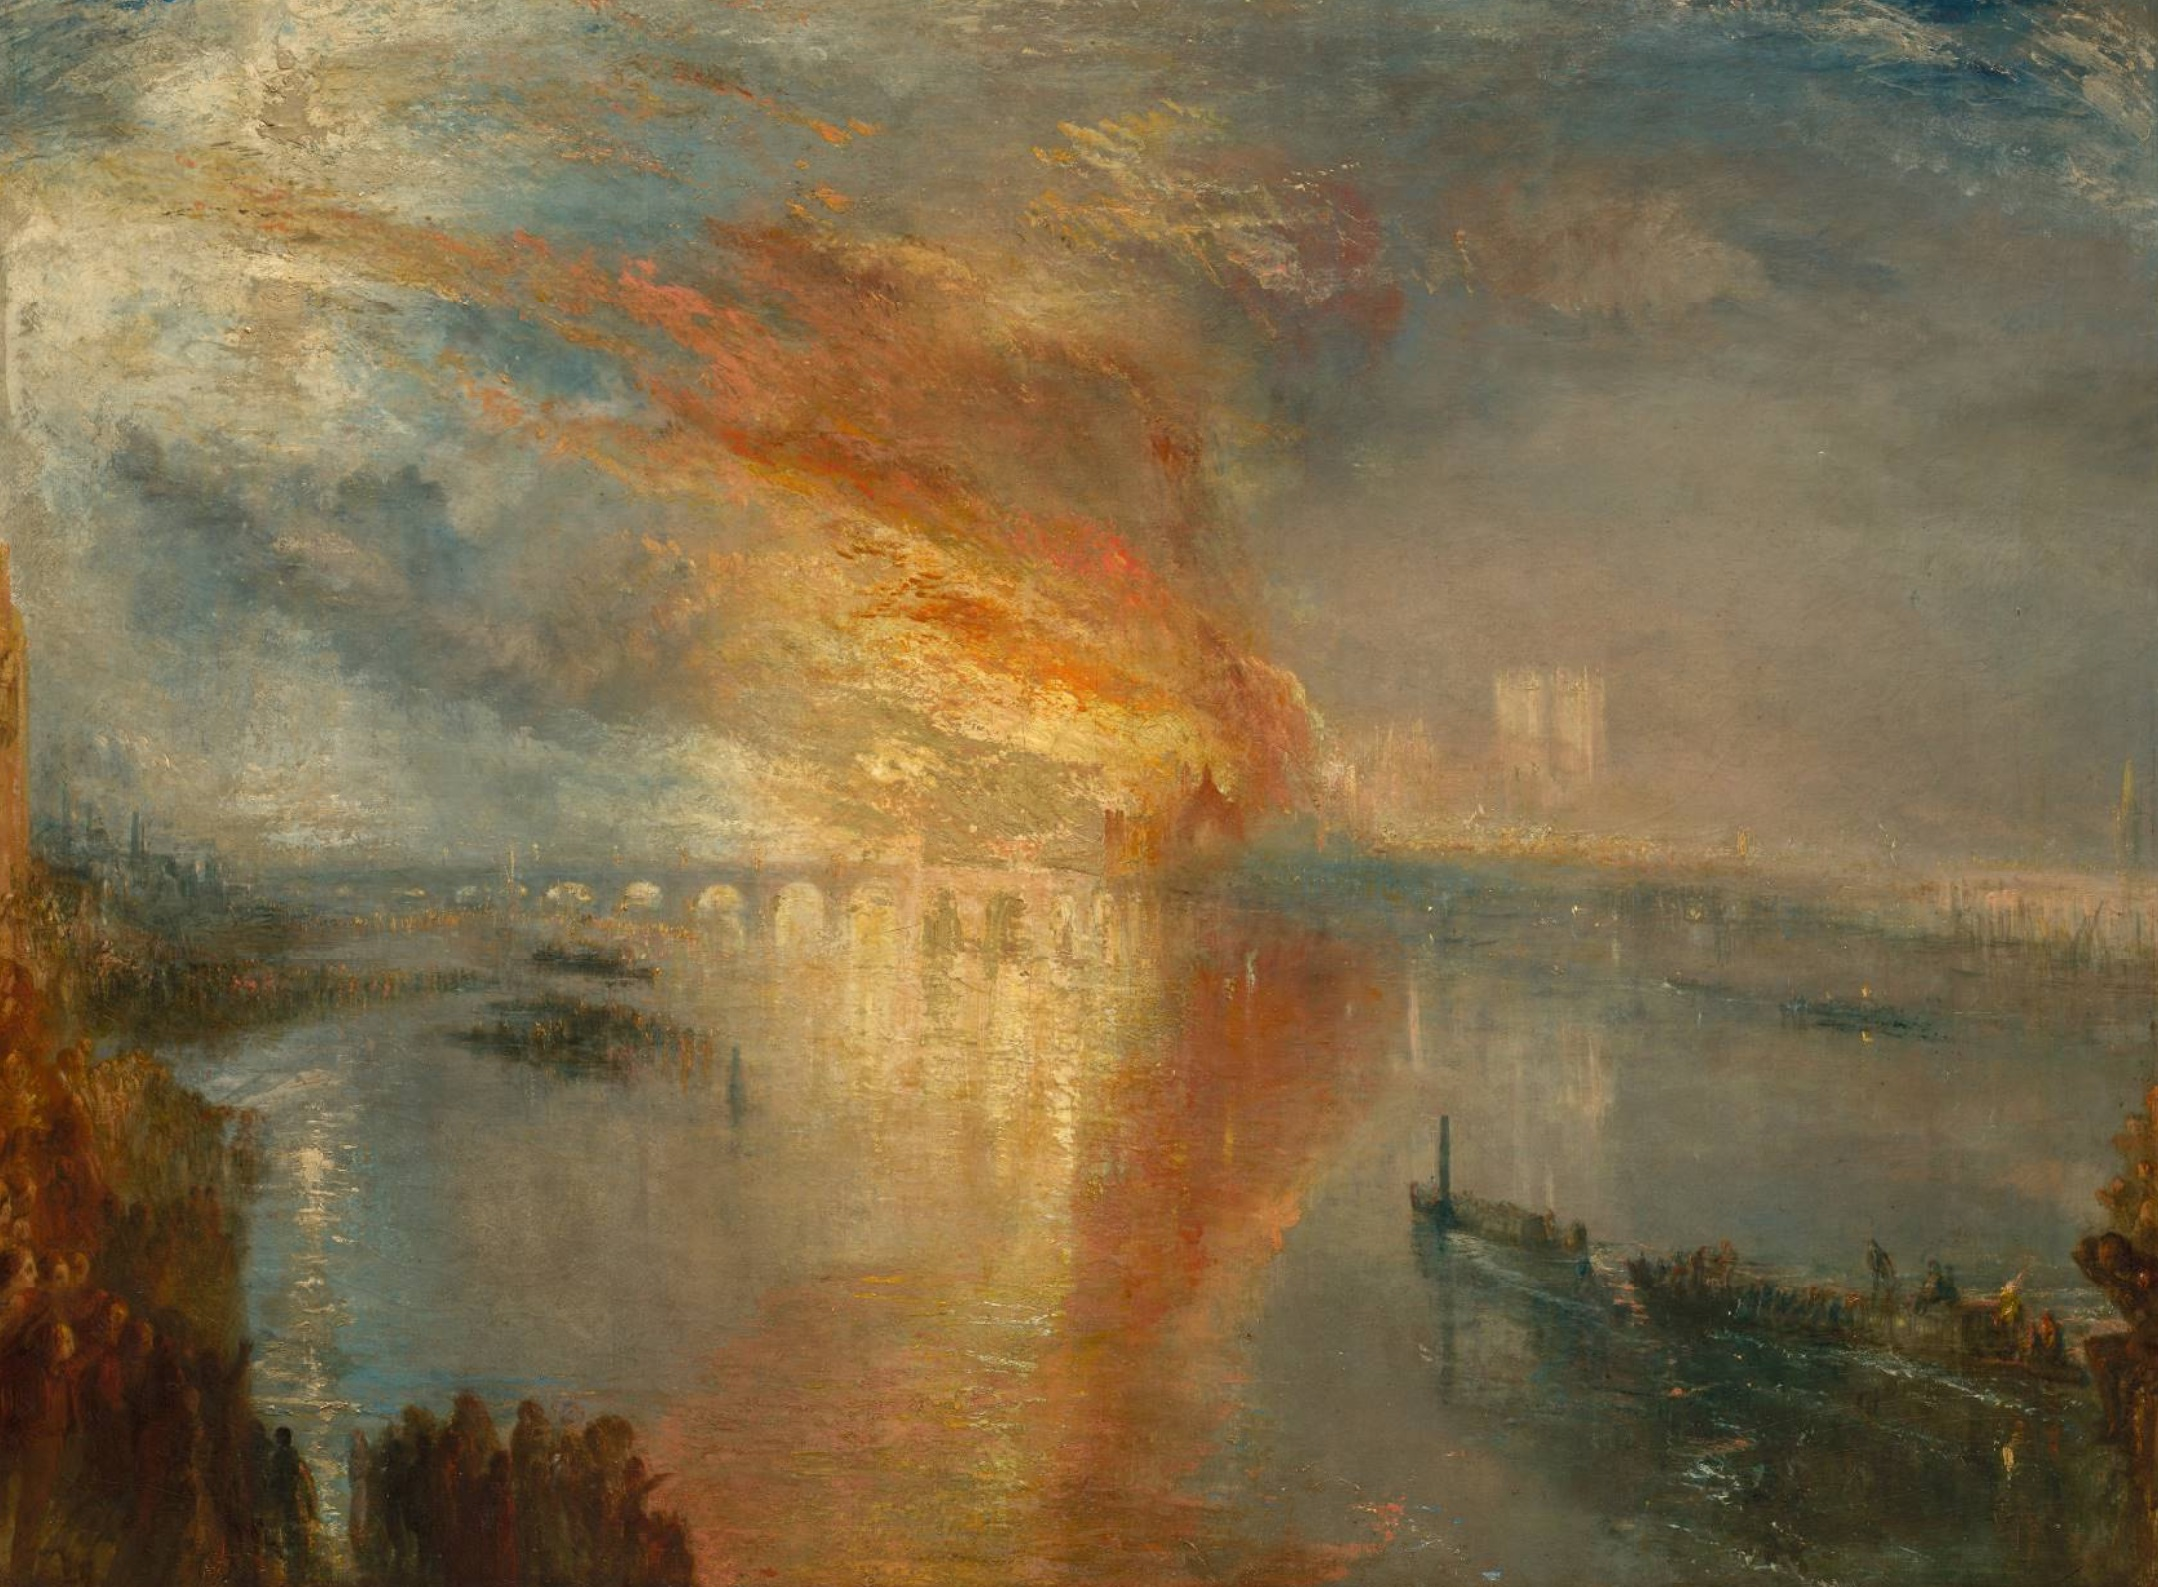 Turner 1835 The Burning of the Houses of Lords and Commons, October 16, 1834 Cleveland Museum of Arts